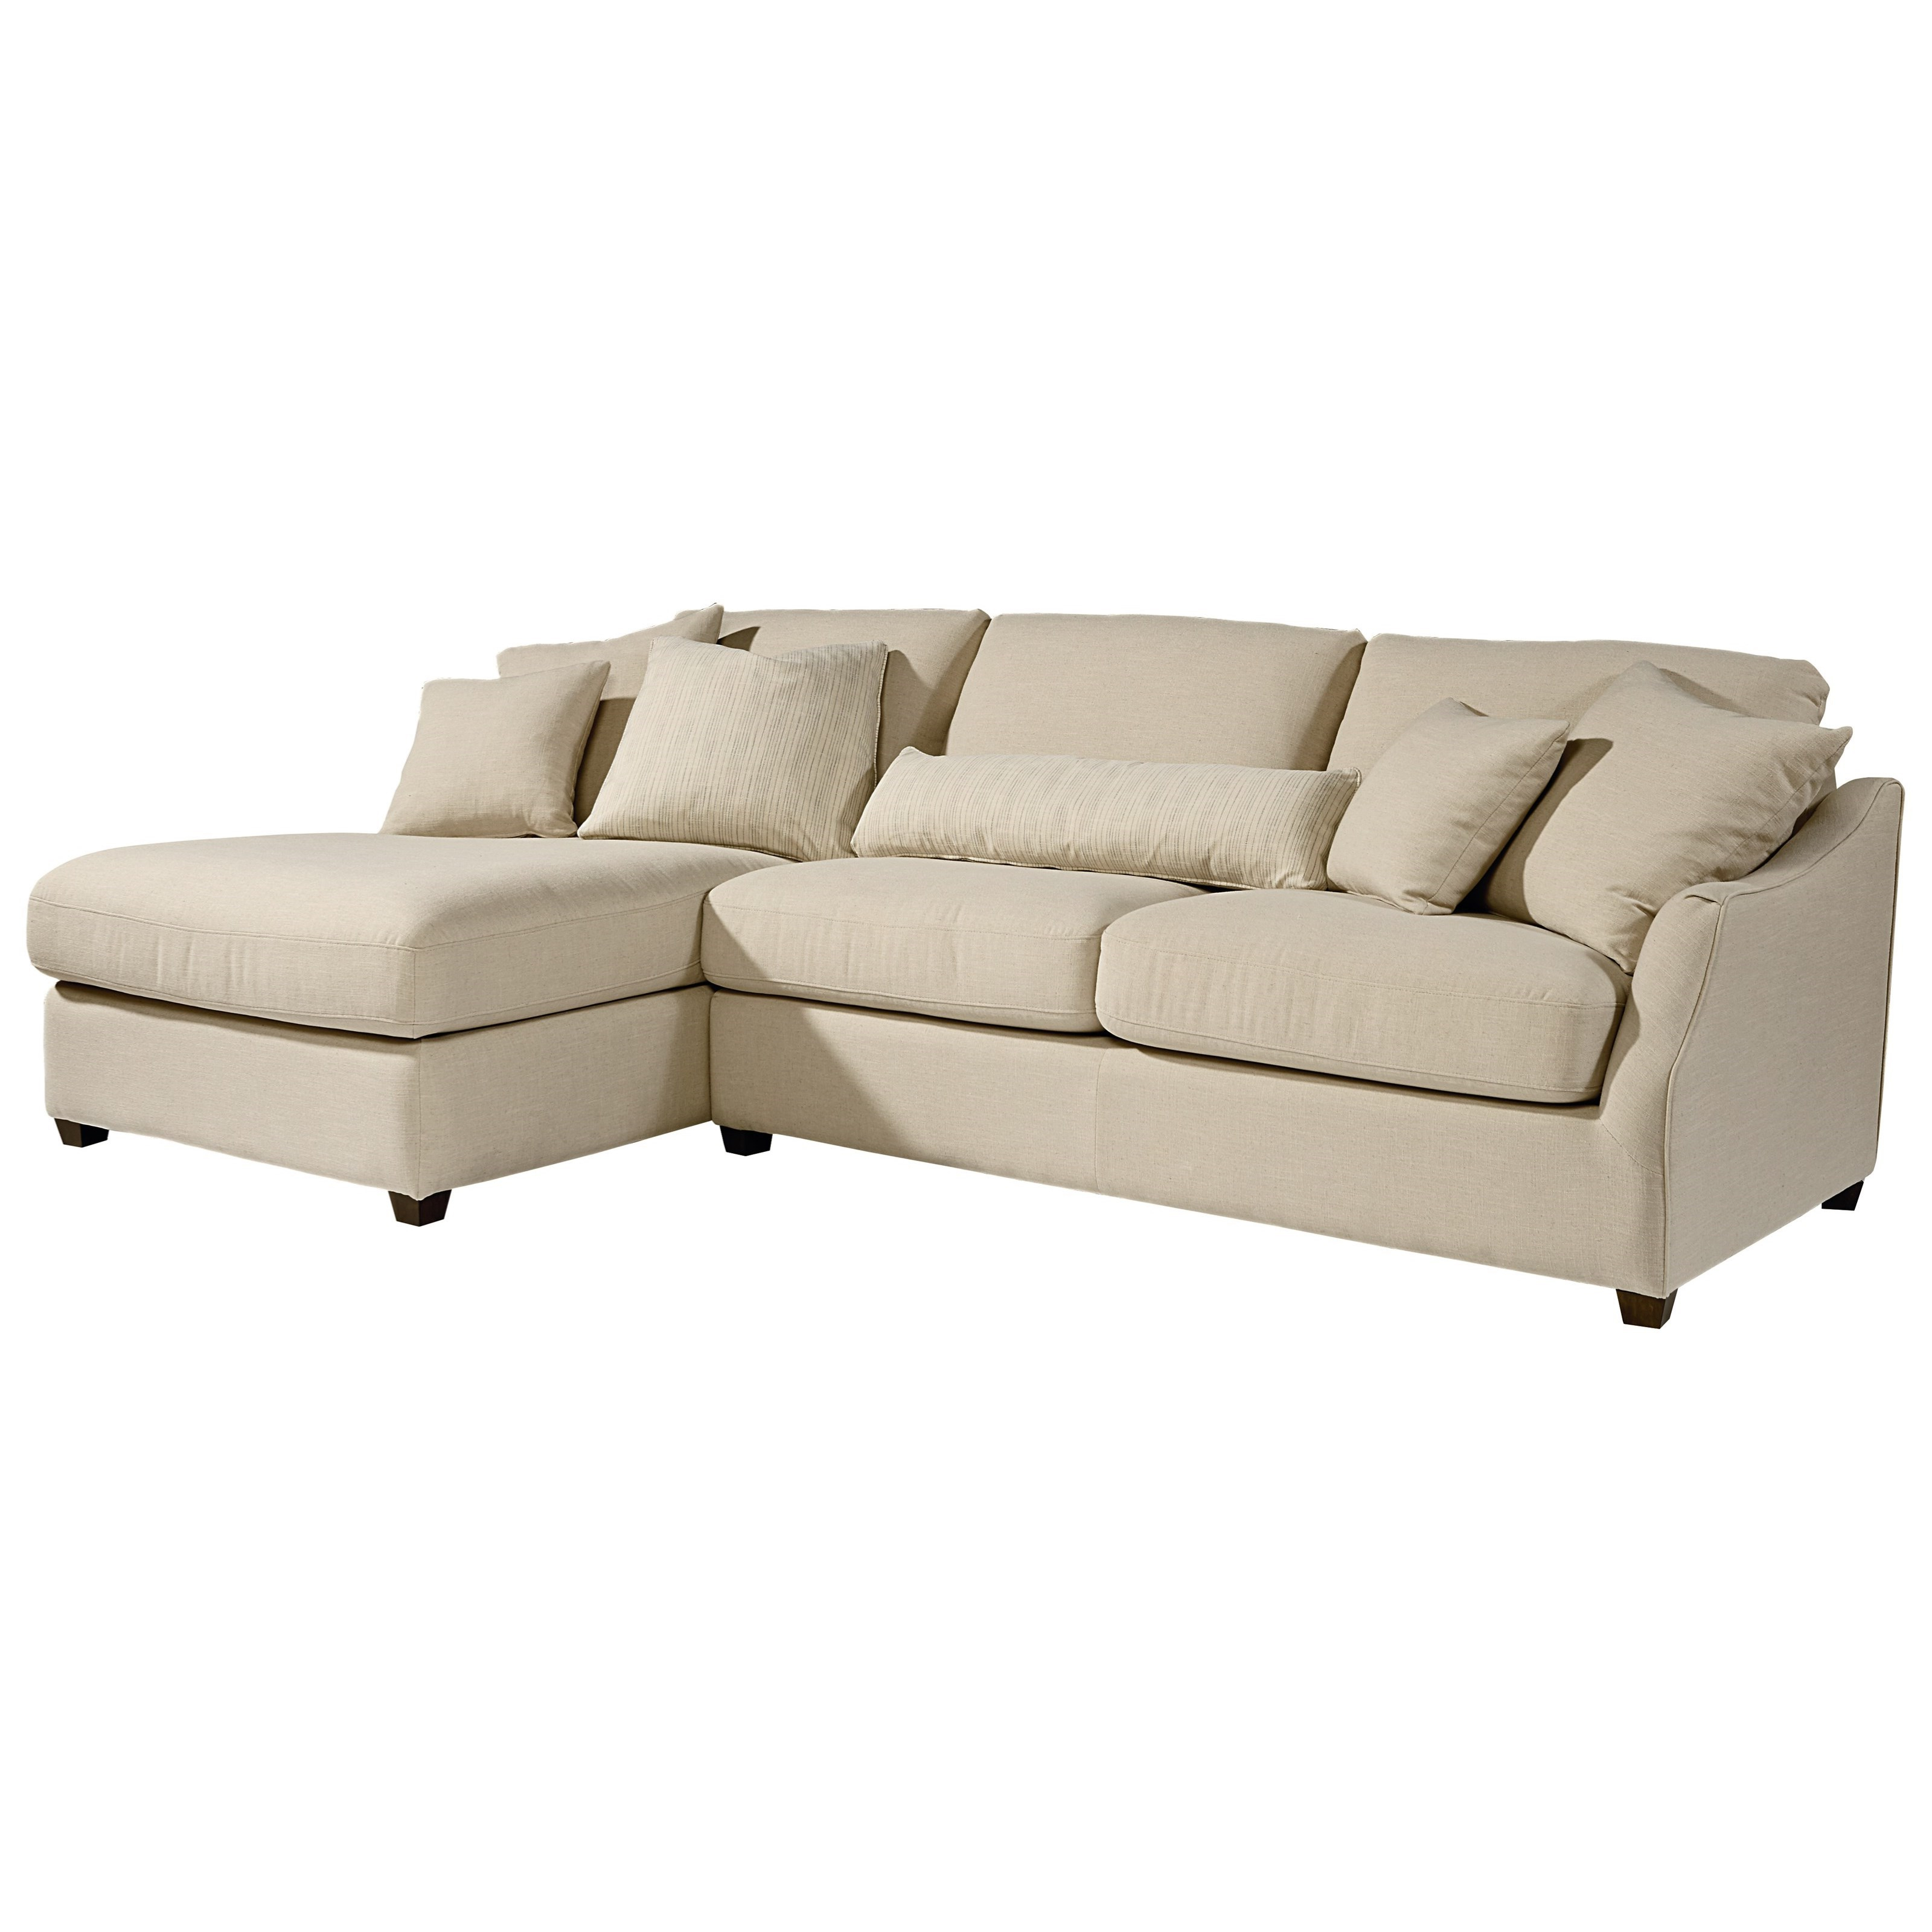 Trendy Magnolia Homejoanna Gaines Homestead Sofa Chaise With Raf Chaise Throughout Magnolia Home Homestead 4 Piece Sectionals By Joanna Gaines (View 5 of 20)